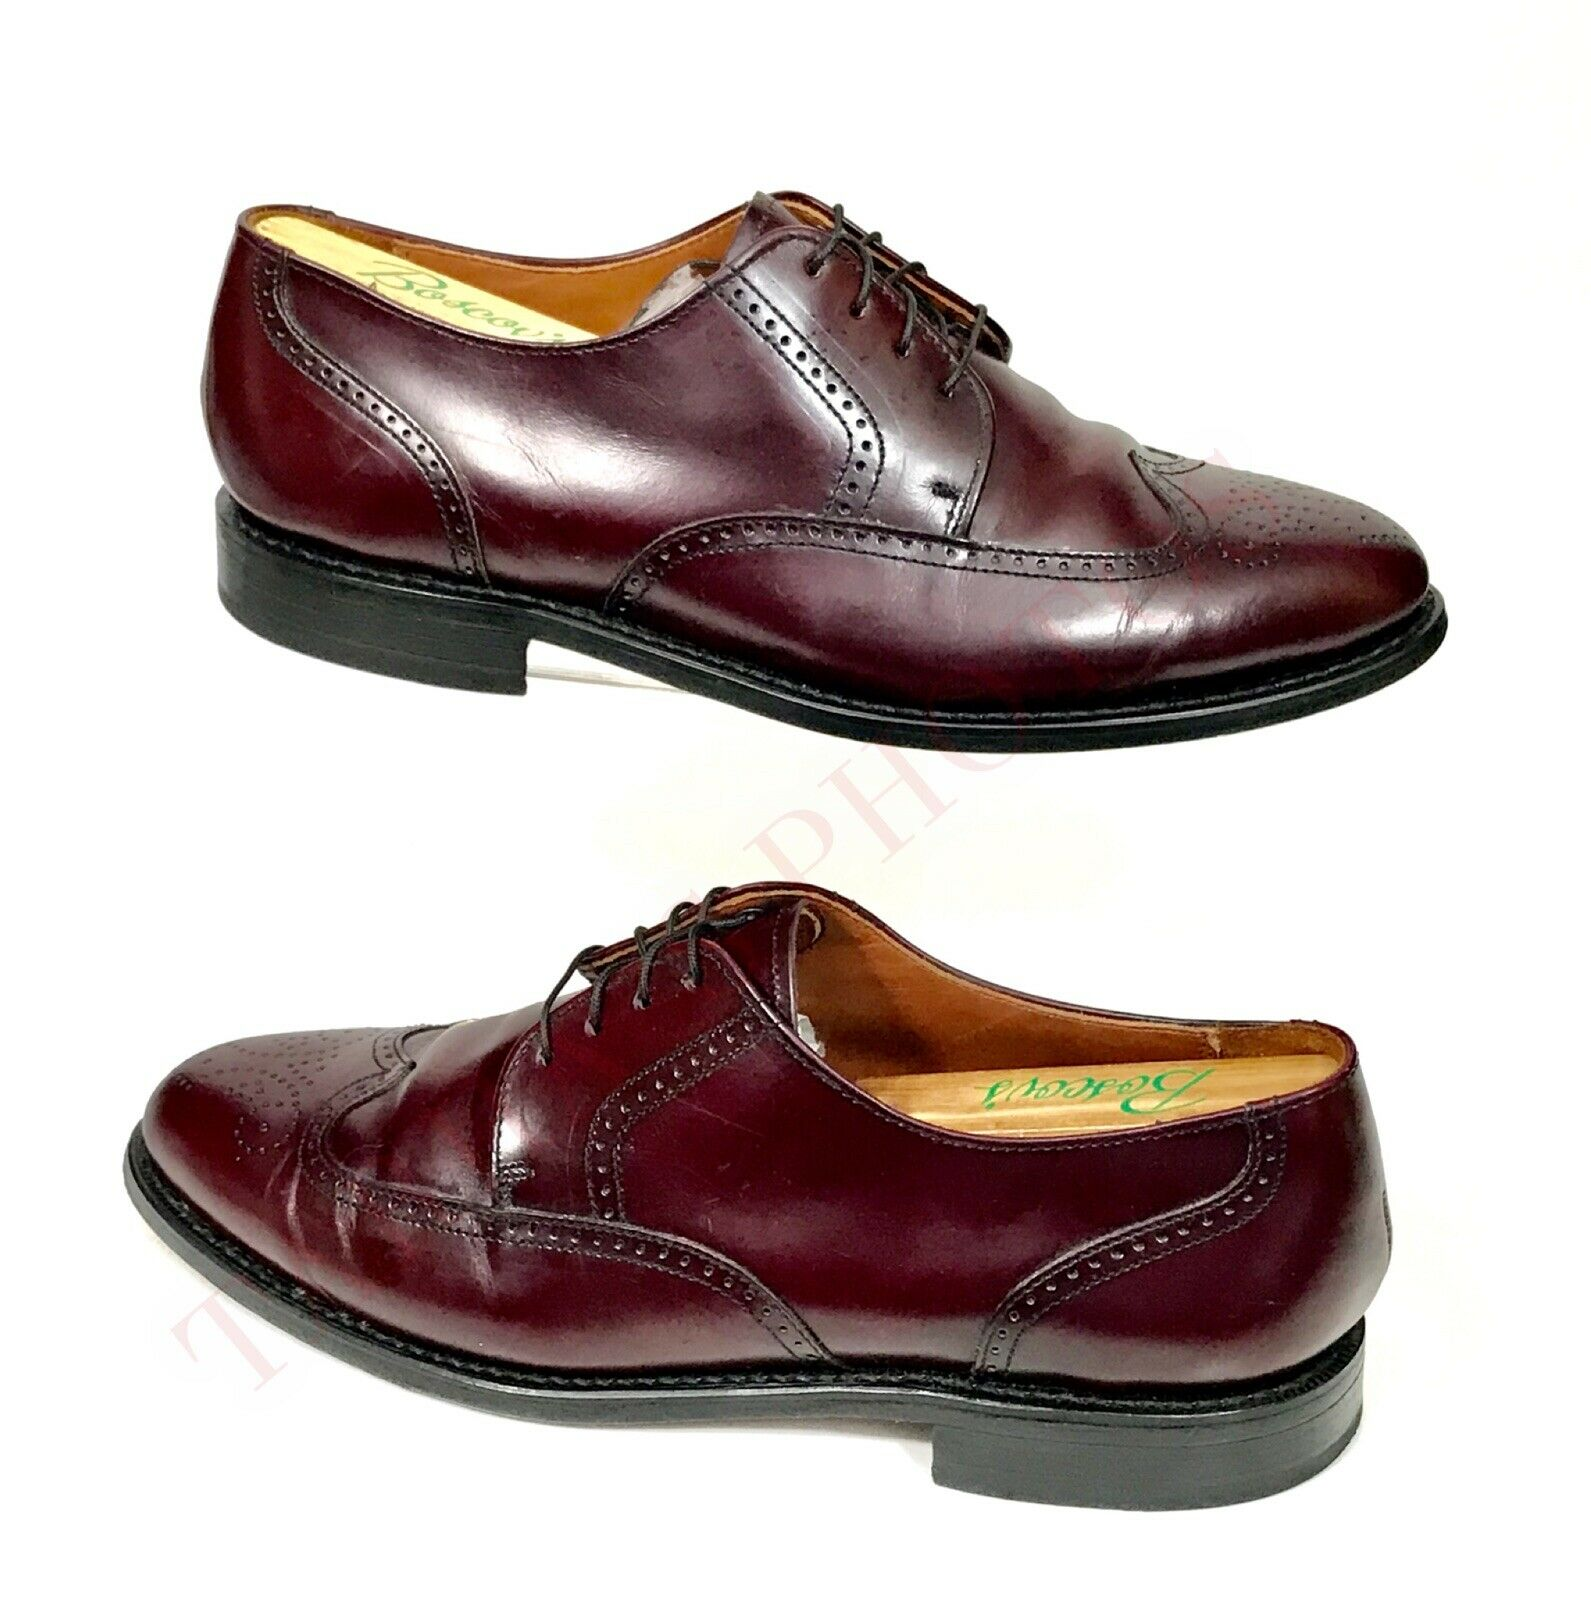 Bostonian Classic Leather Wingtip Oxford Dress shoes Burgundy Mens Size 8.5D EUC